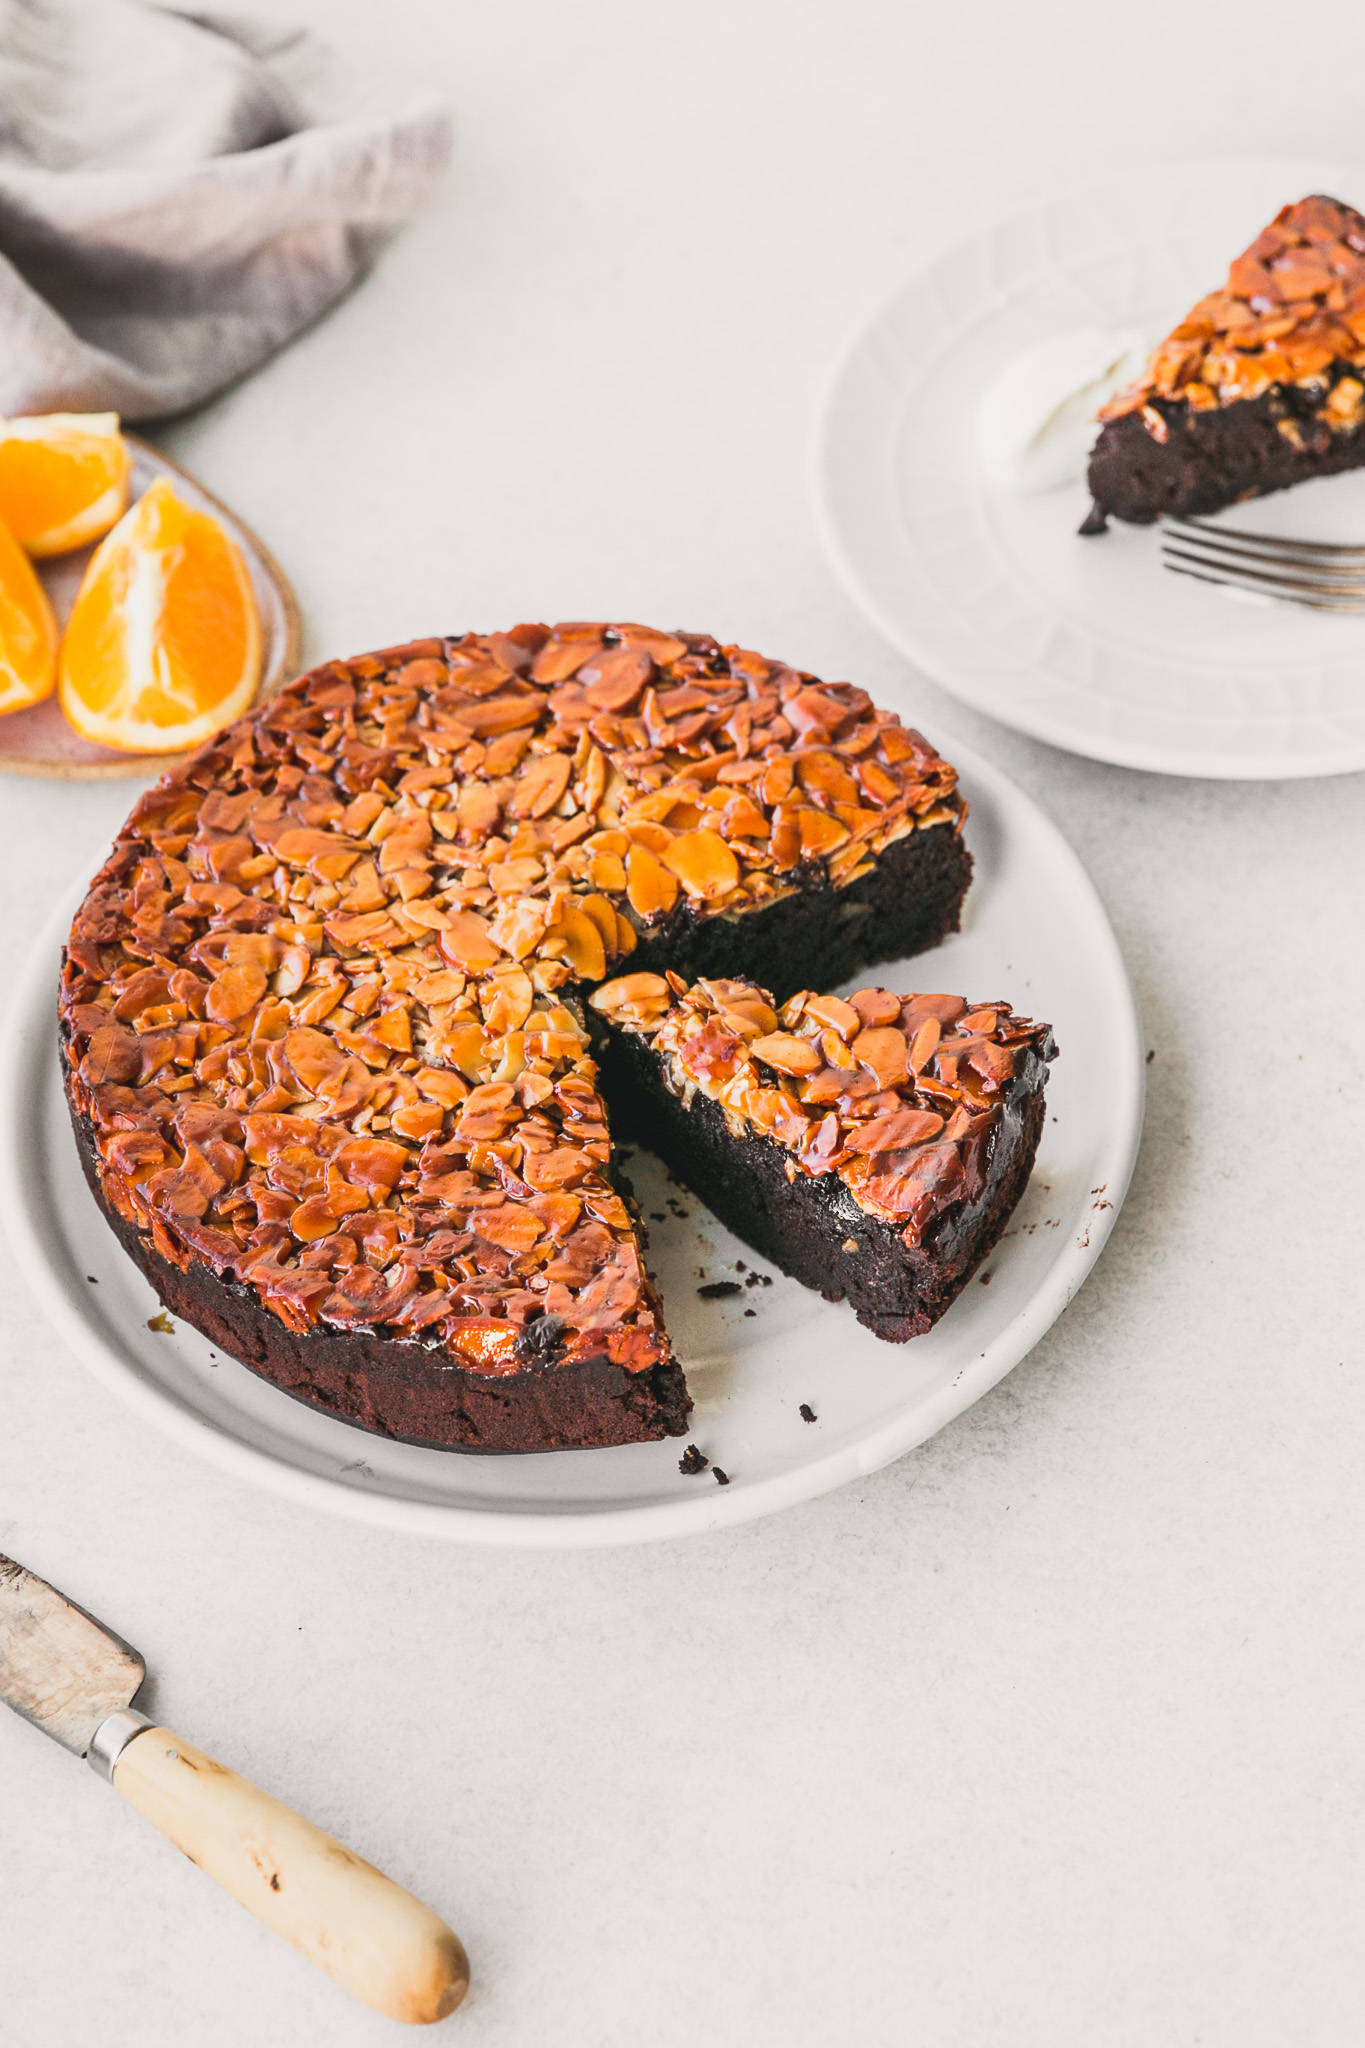 Dessert Kitchen Melbourne Whole Orange Chocolate Almond Cake